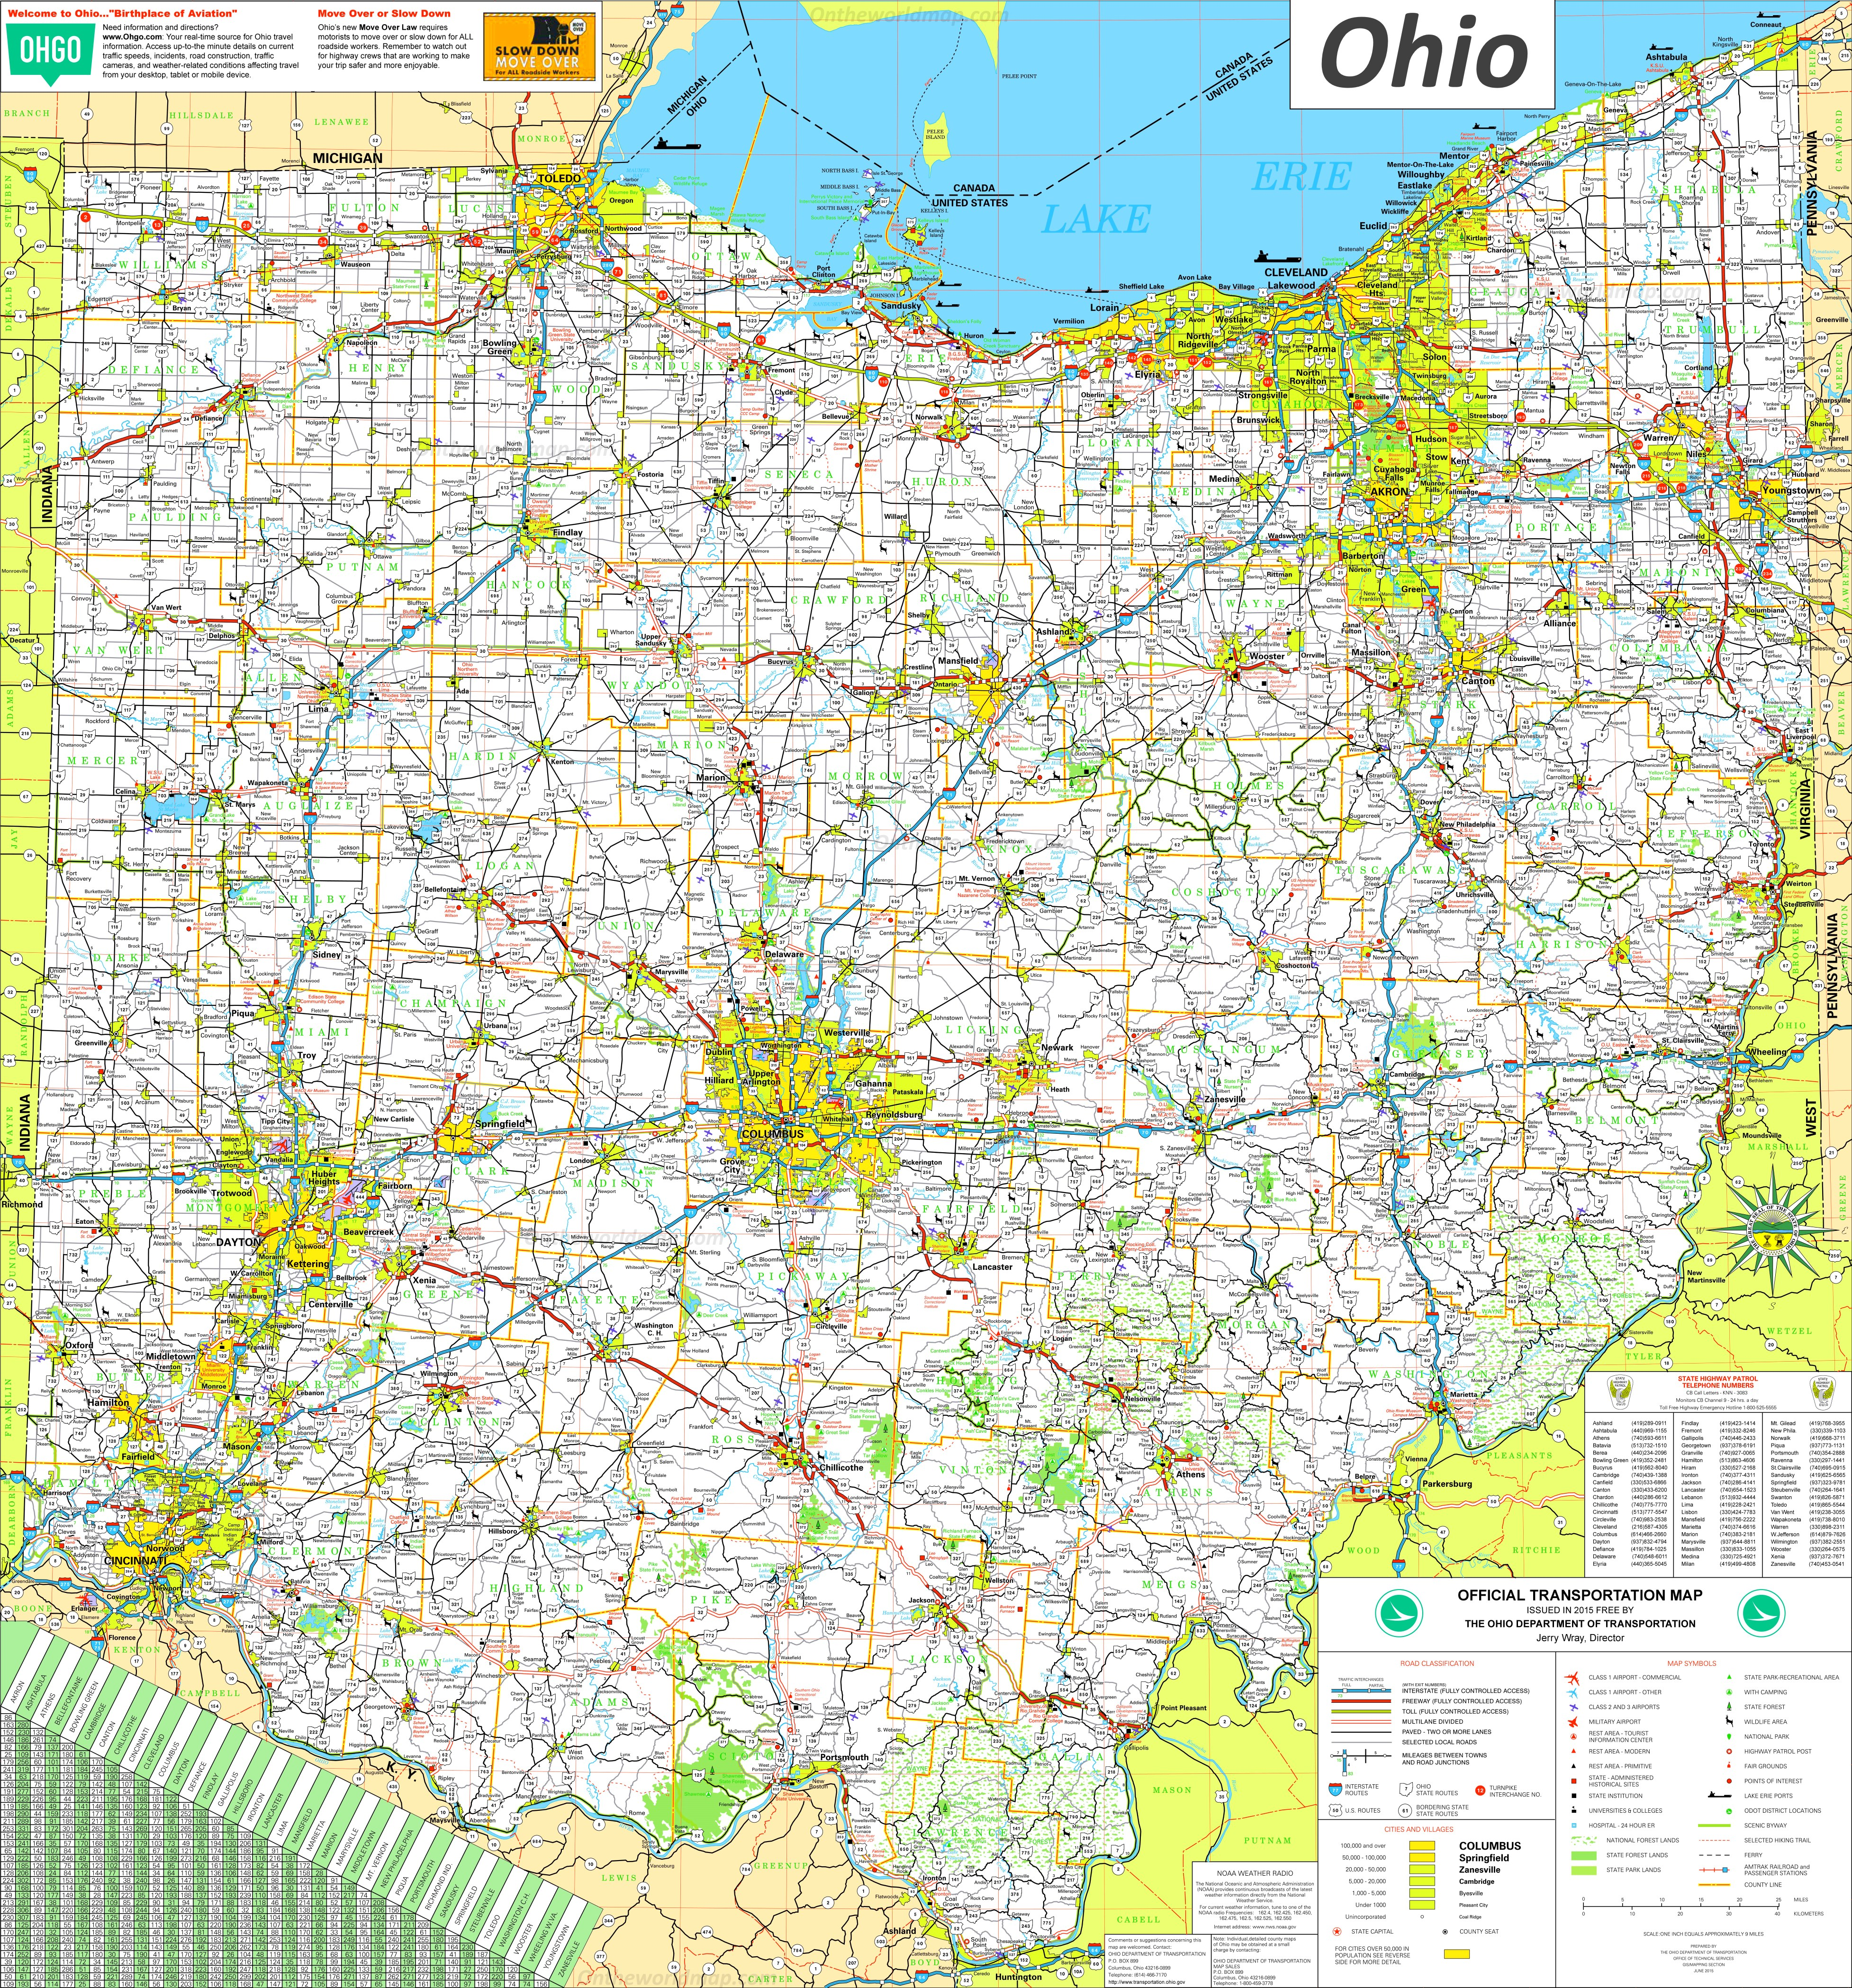 Ohio Map With Cities And Towns Large detailed tourist map of Ohio with cities and towns Ohio Map With Cities And Towns